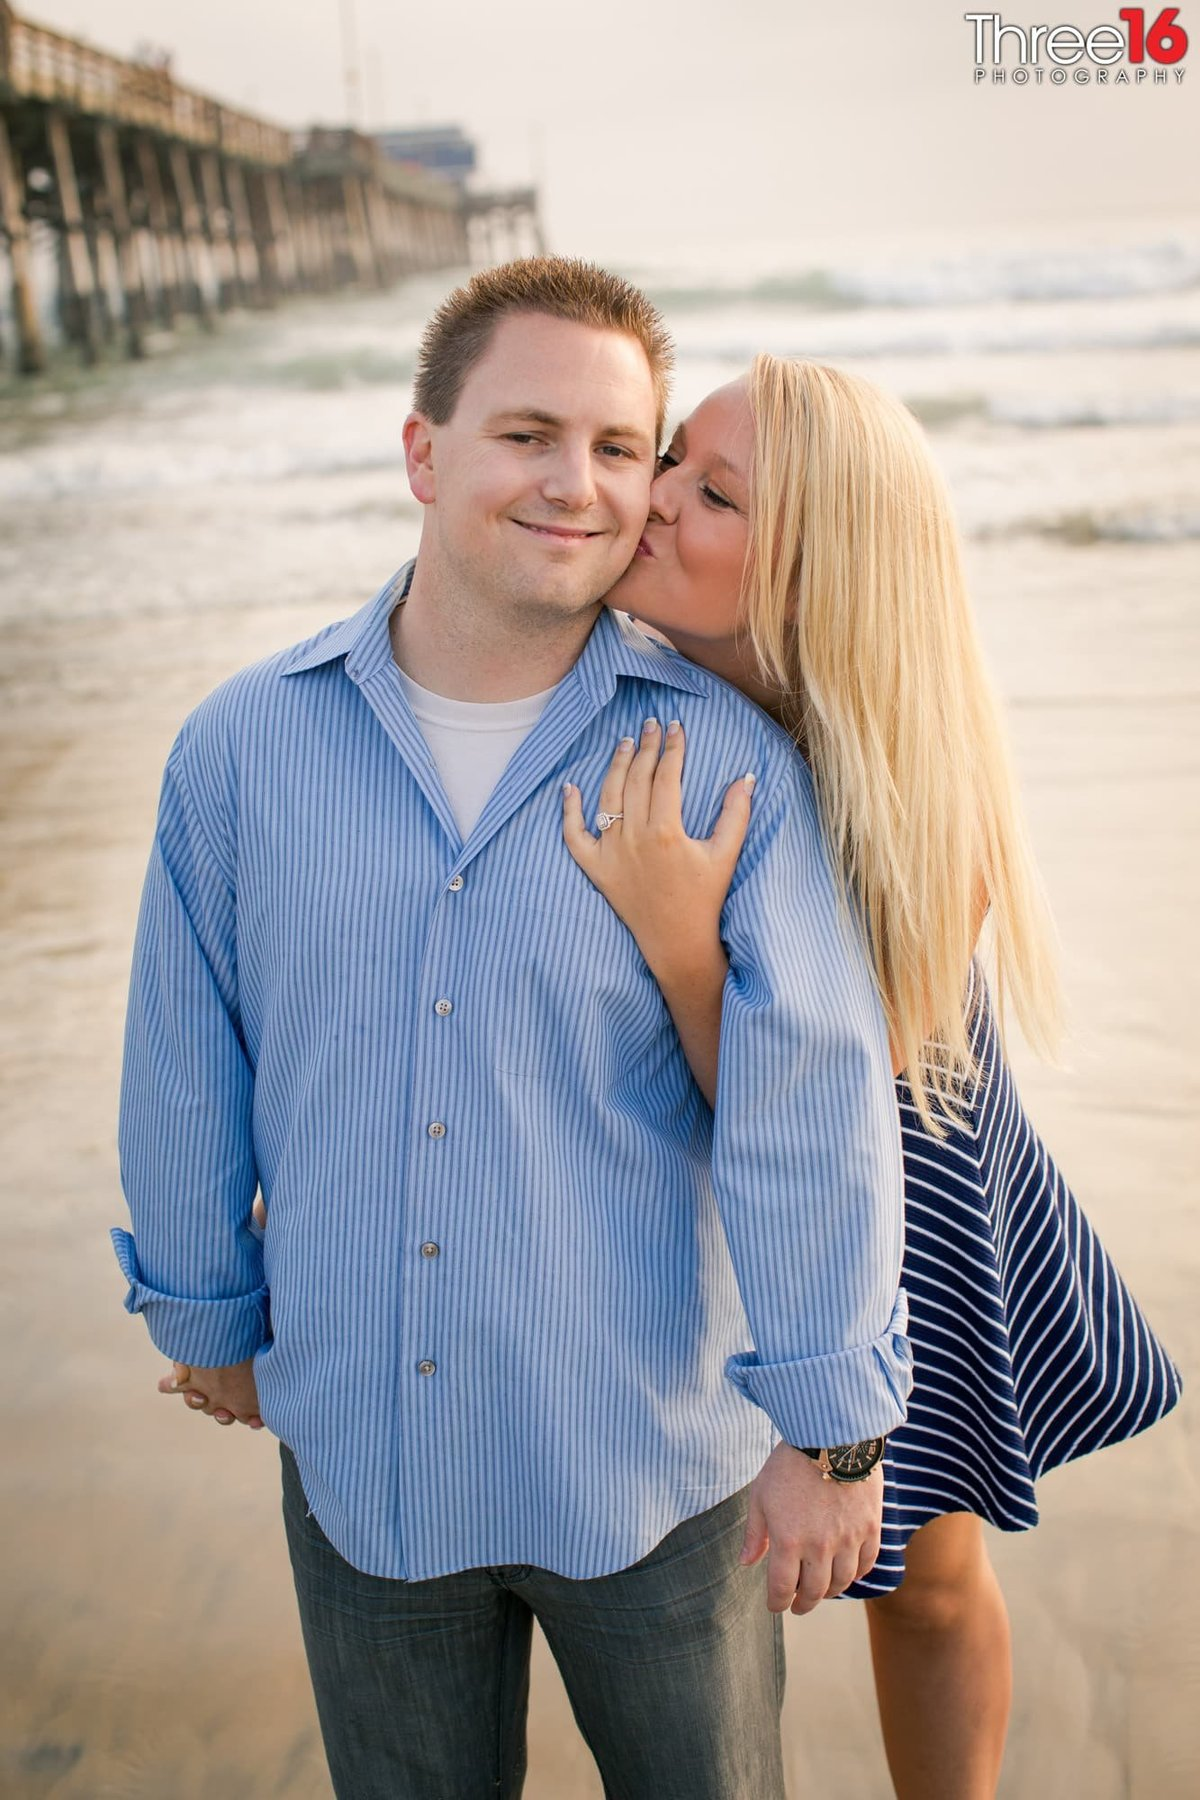 Newport Beach Pier Engagement Photos Orange County Newport Beach Wedding Professional